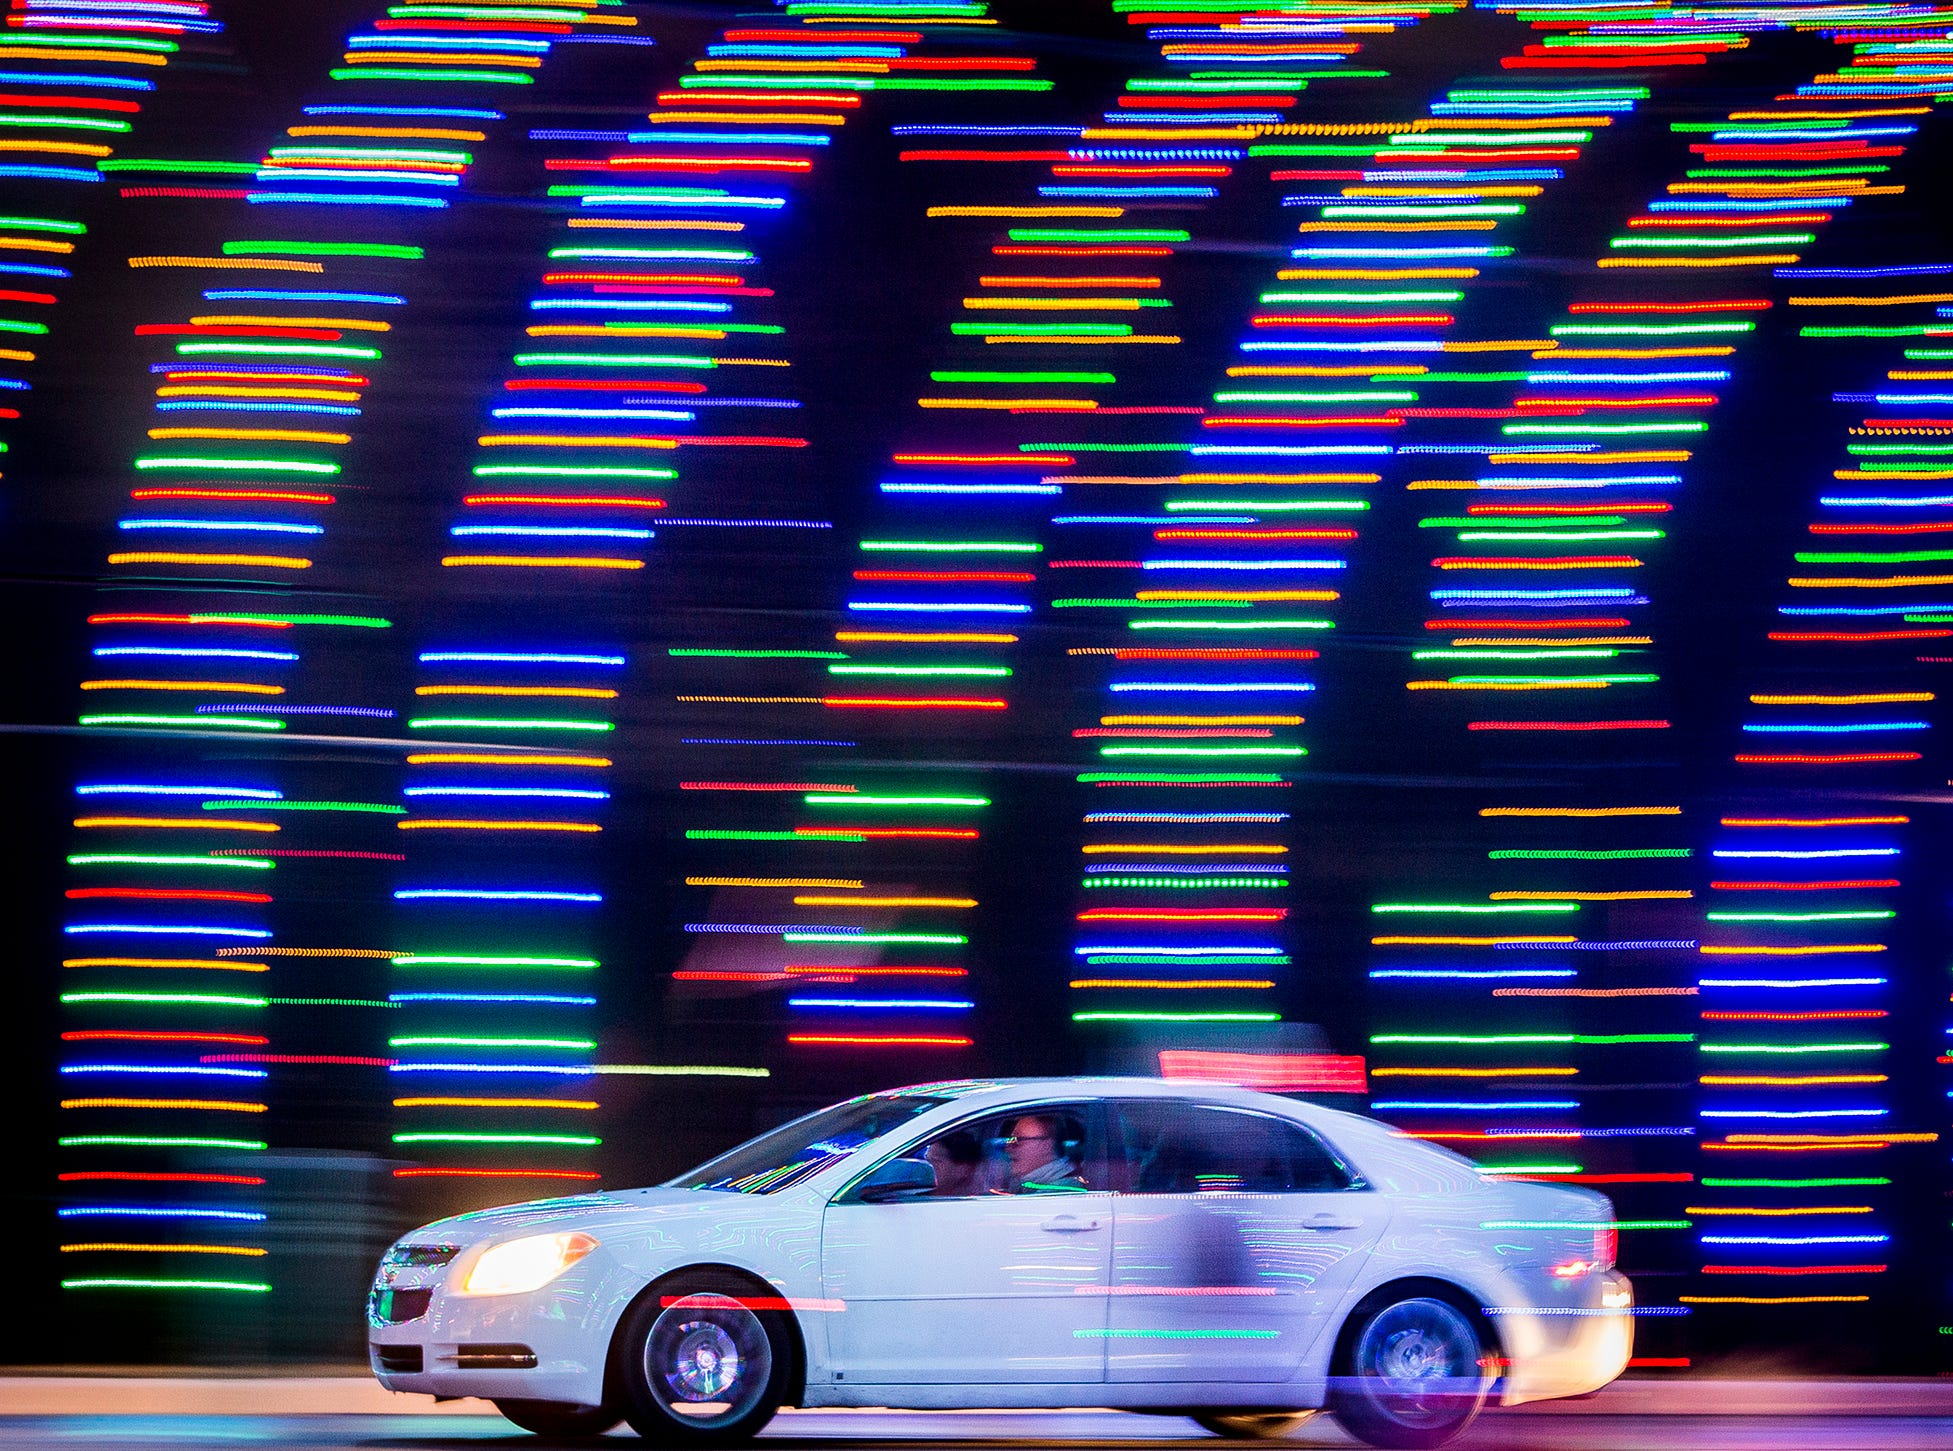 Visitors drive through the light display at the Suzanne Gresham Center in Muncie.